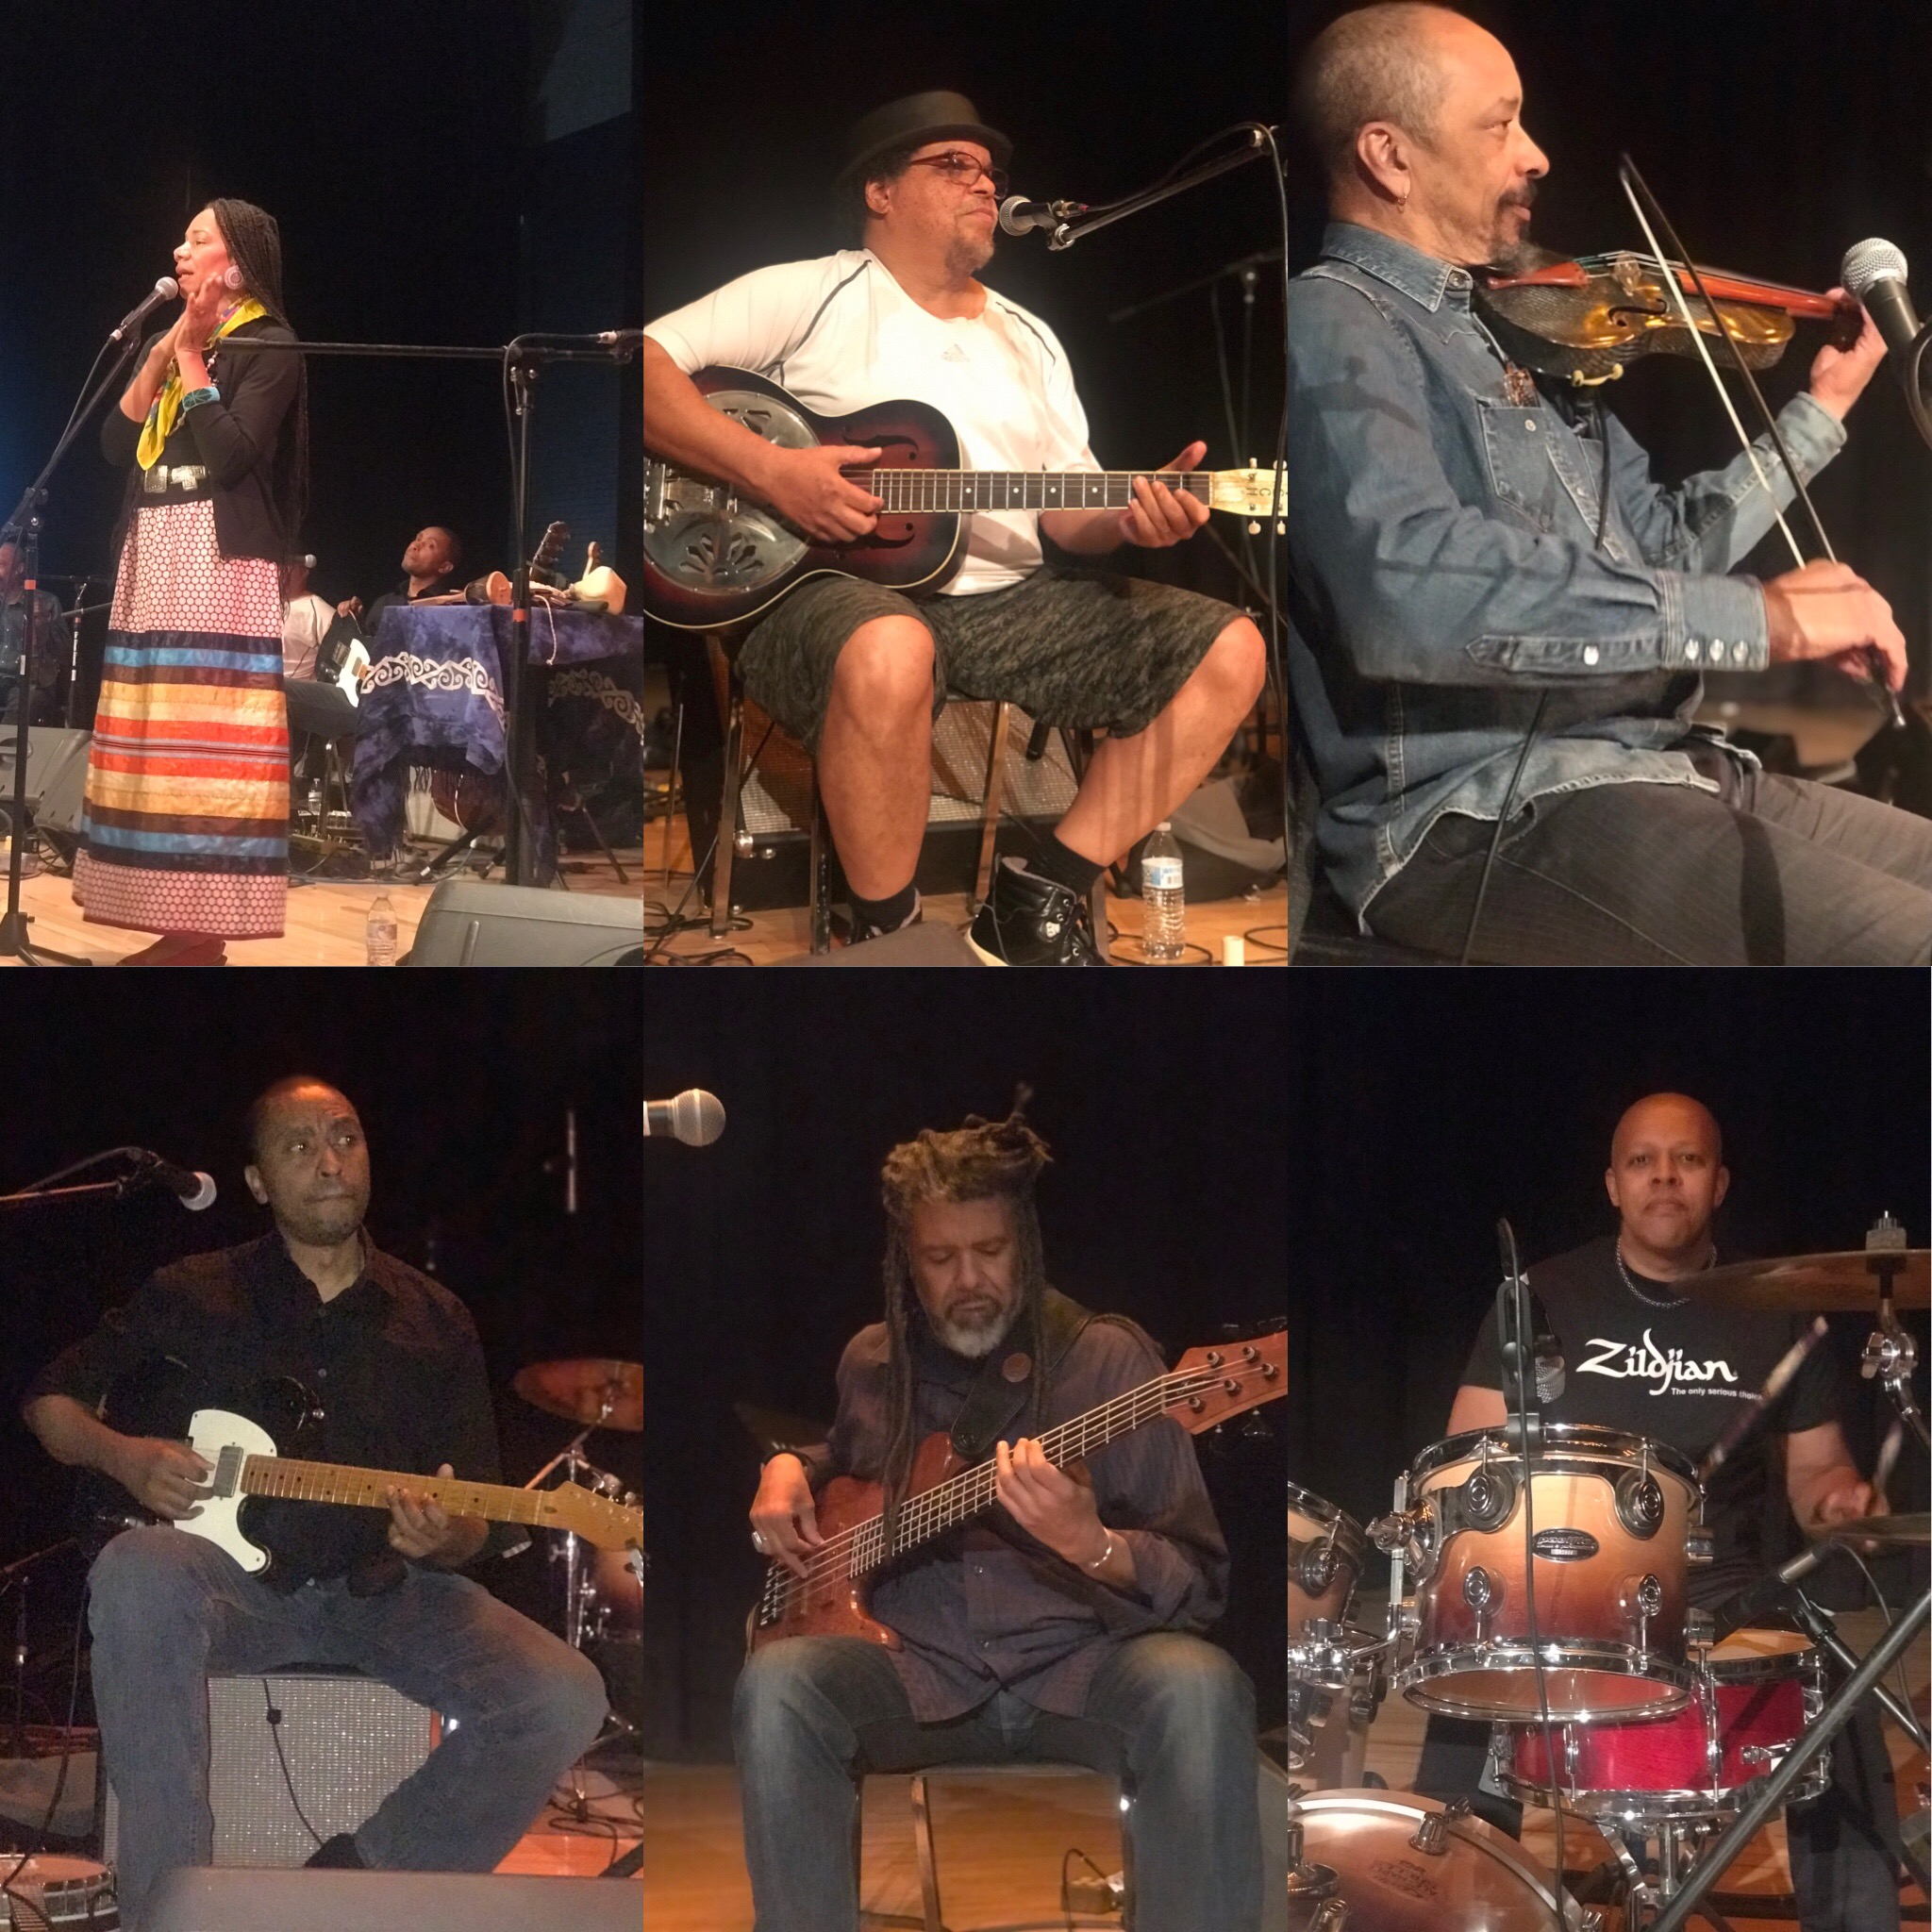 Clovis Community College Cultural Arts Series Wraps Up the Season with Martha Redbone's